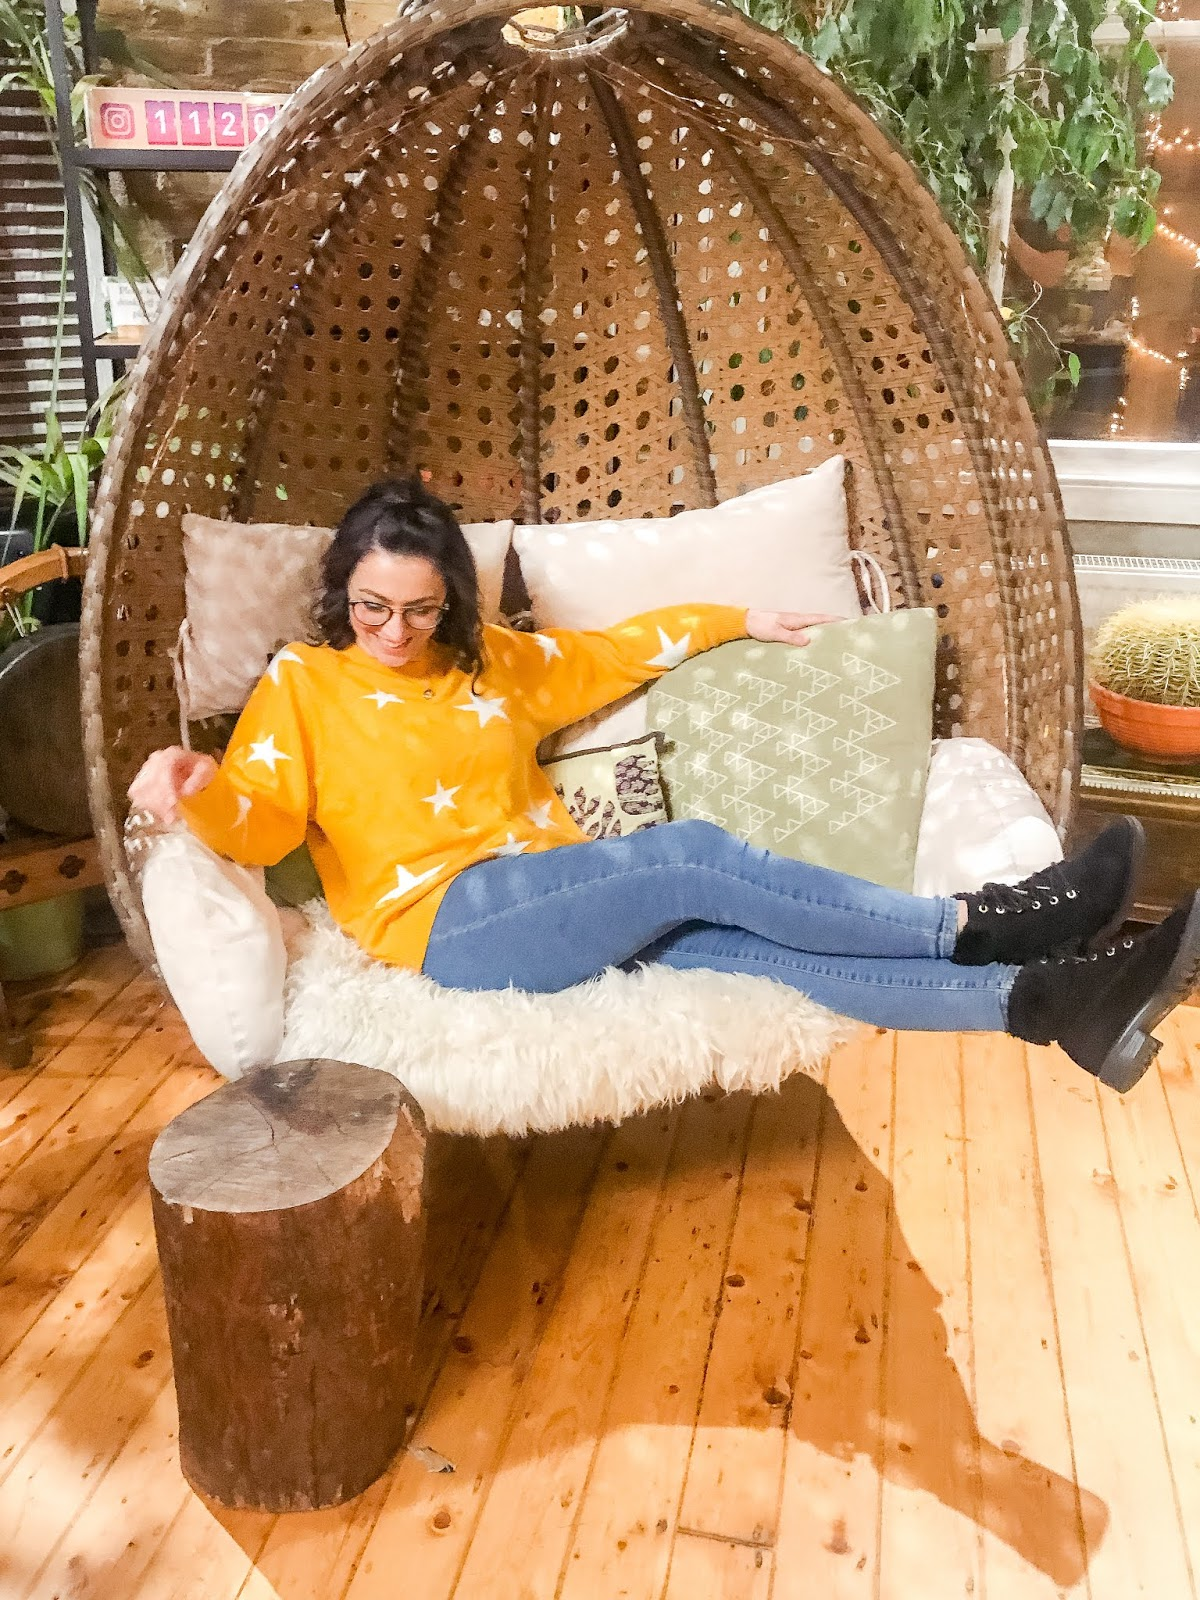 I'm sitting in a ceiling hung wicker basket chair laughing in a yellow with white stars jumper, blue jeans and black flat boots.